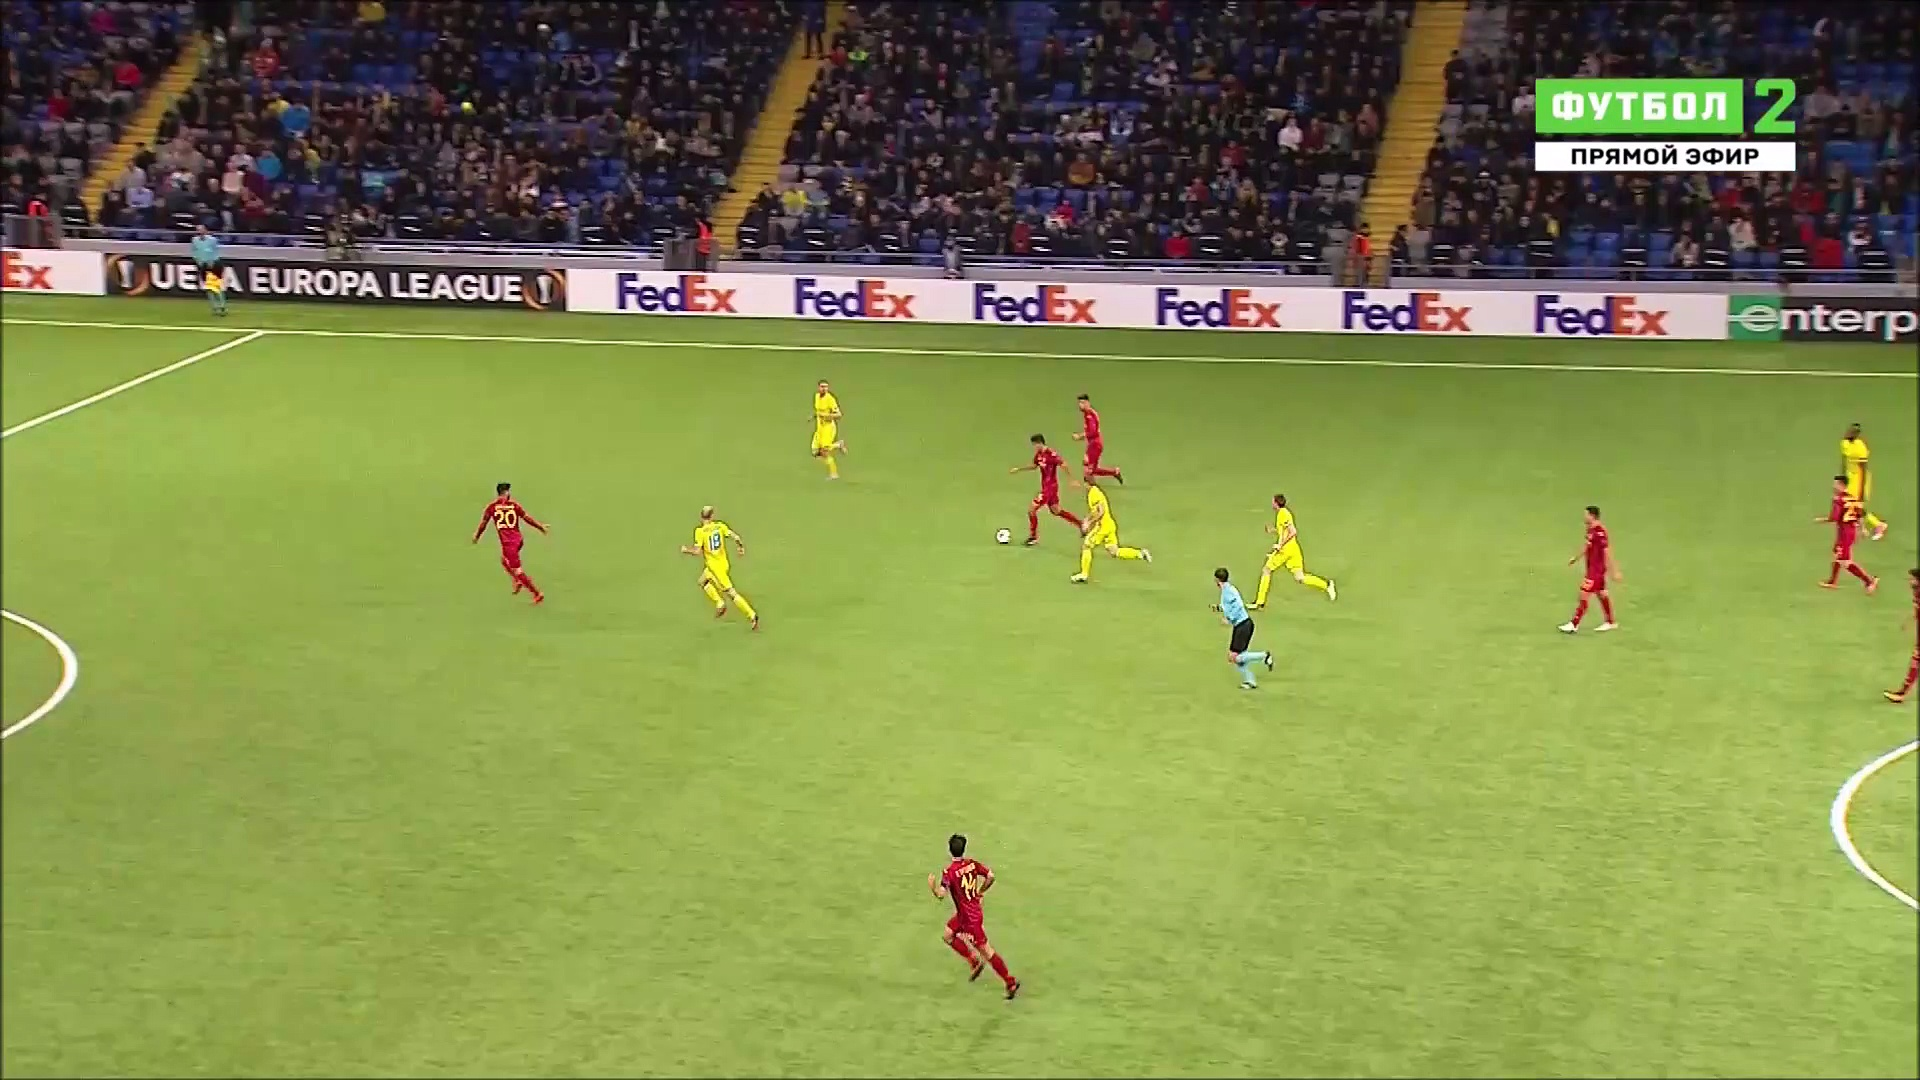 2-3 Patrick Twumasi Super Goal UEFA  Europa League  Group A – 23.11.2017 FC Astana 2-3 Villarreal CF